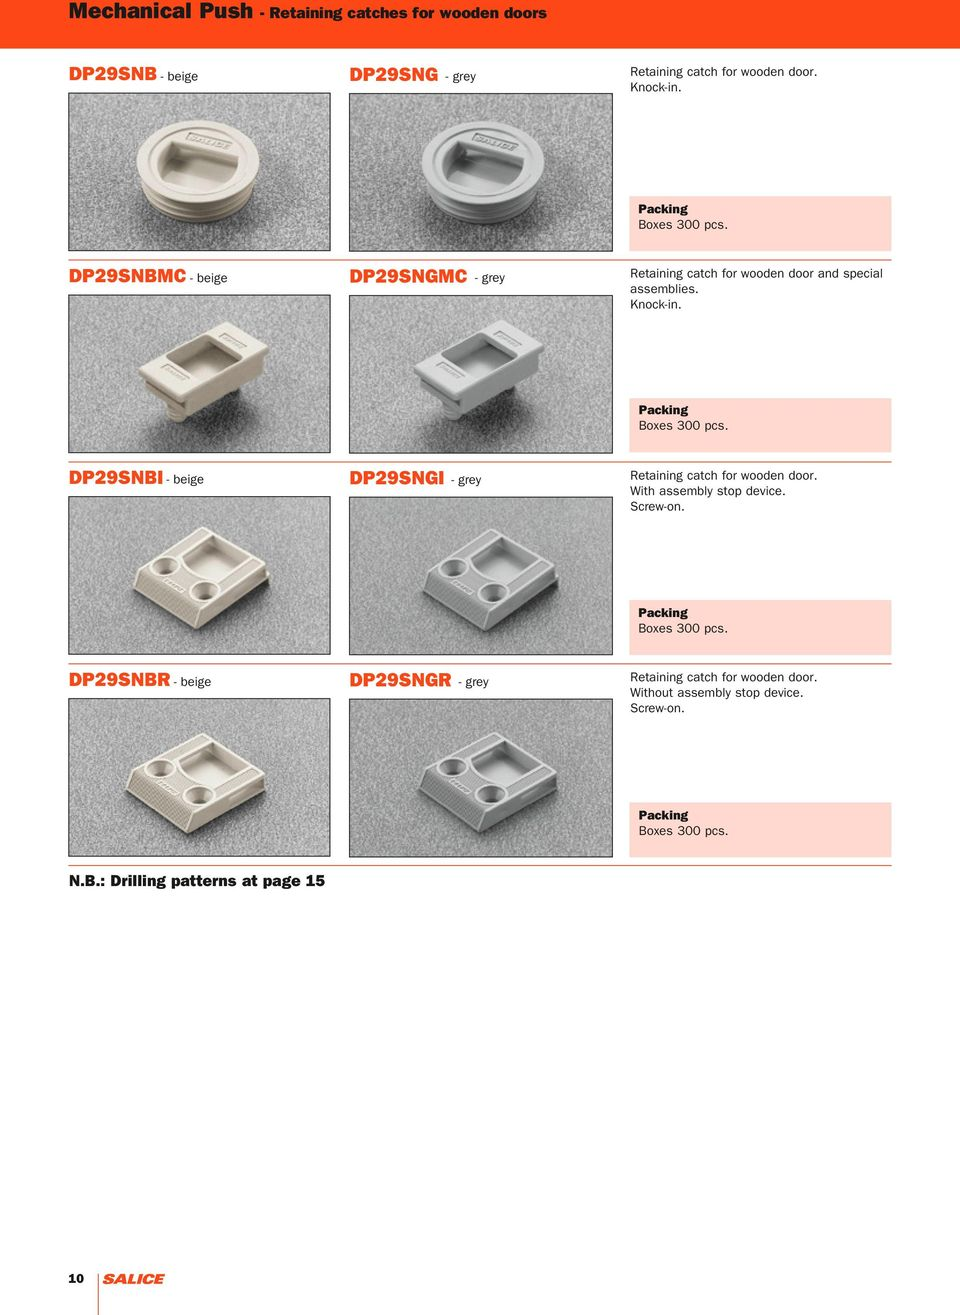 DP29SNBI DP29SNGI - beige - grey Retaining catch for wooden door. With assembly stop device. Screw-on. Boxes 300 pcs.